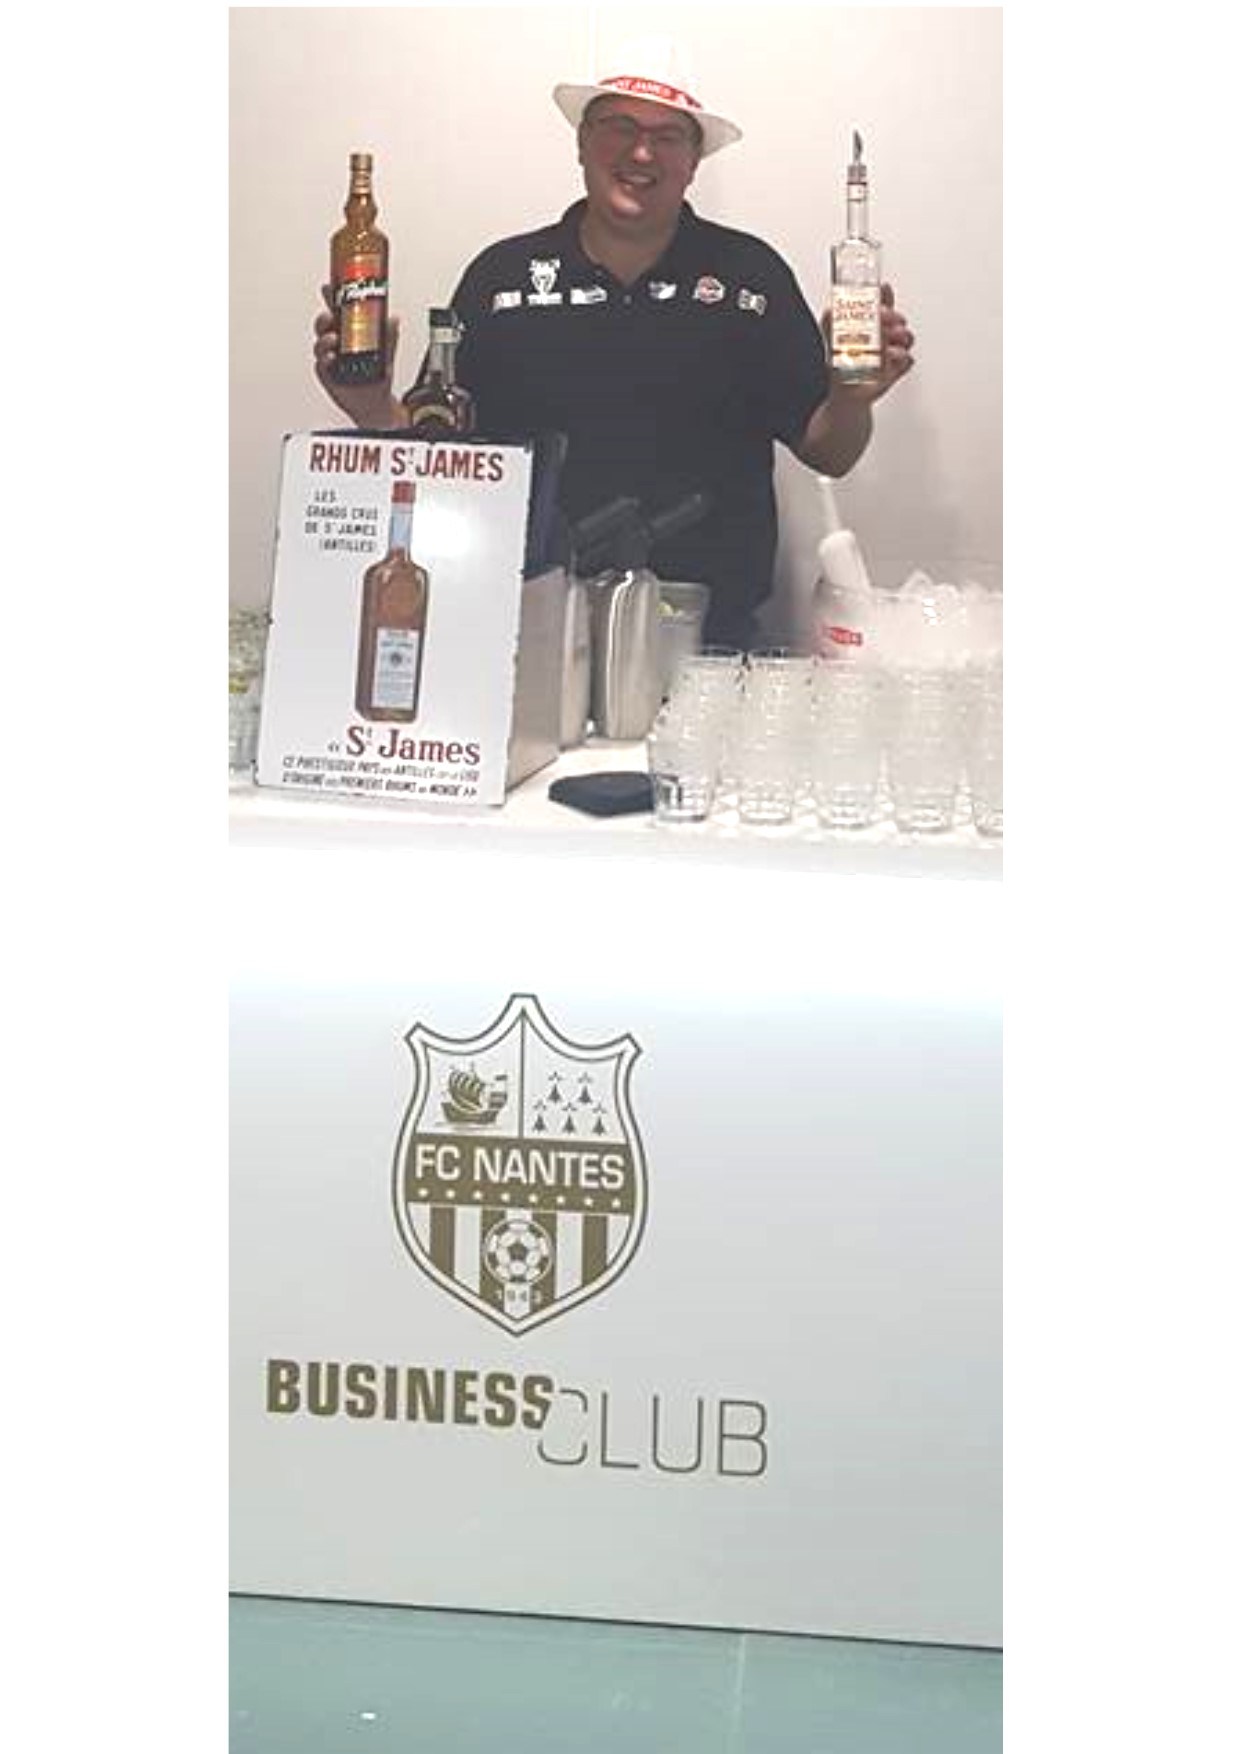 MON BAR A COCKTAILS AU FC NANTES